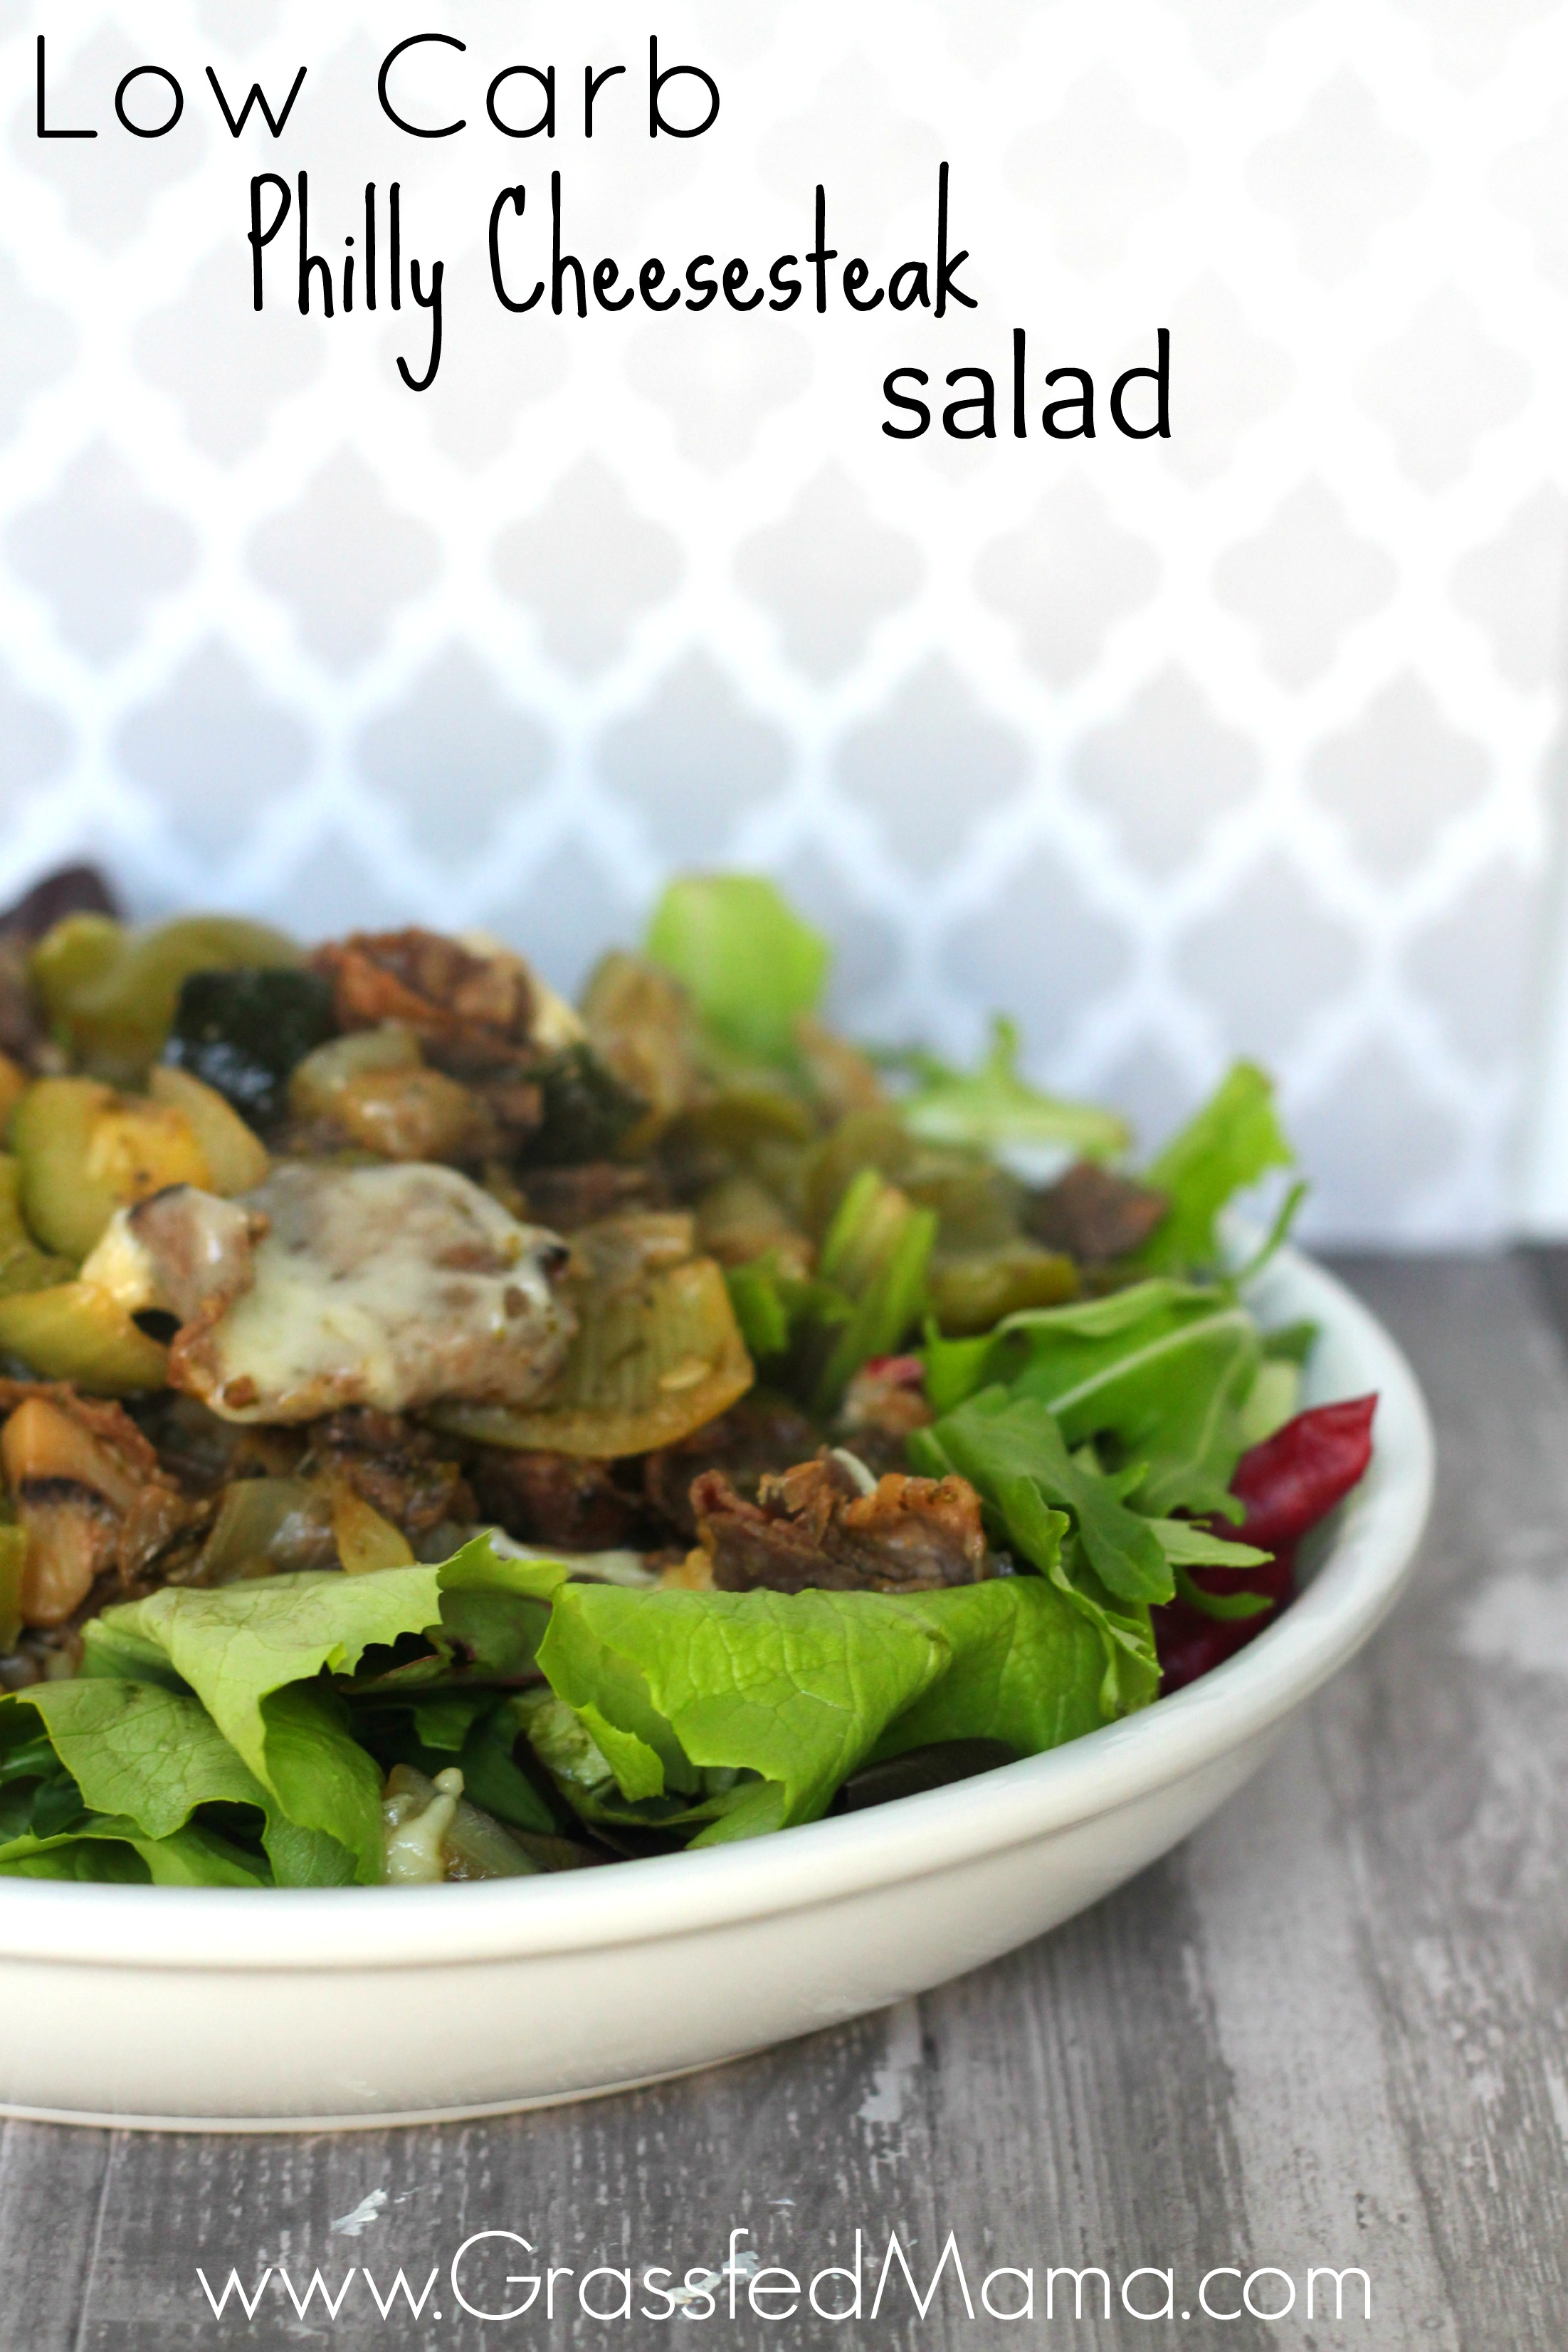 Low Carb Philly cheesesteak salad